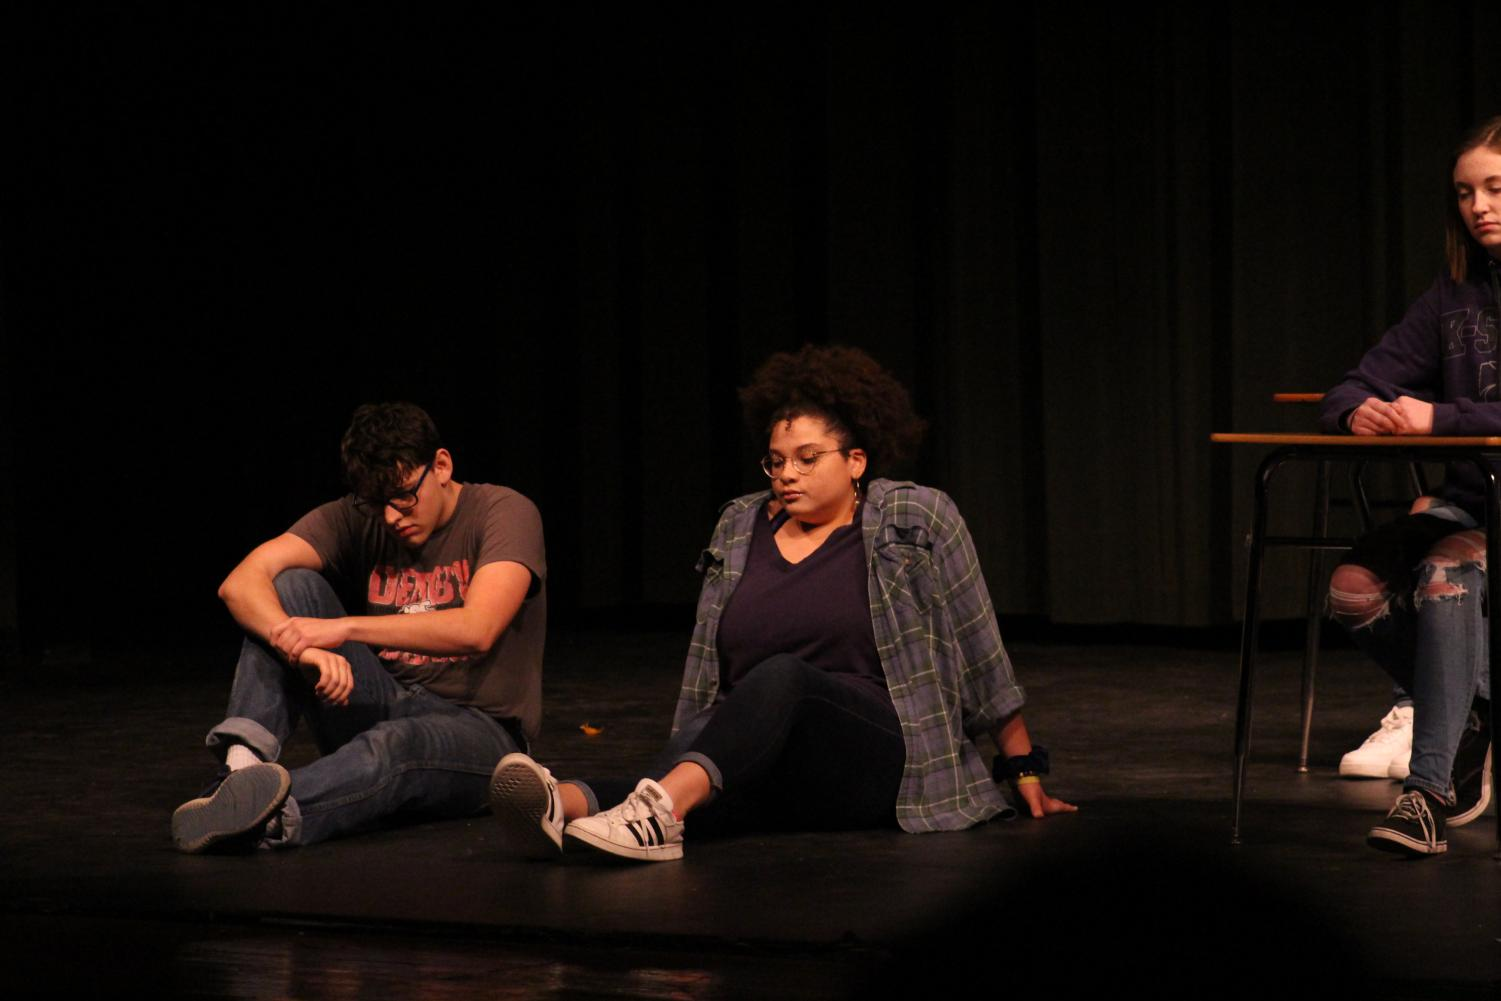 One+Act+Play-Lockdown+%28Photos+by+Kiley+Hale%29